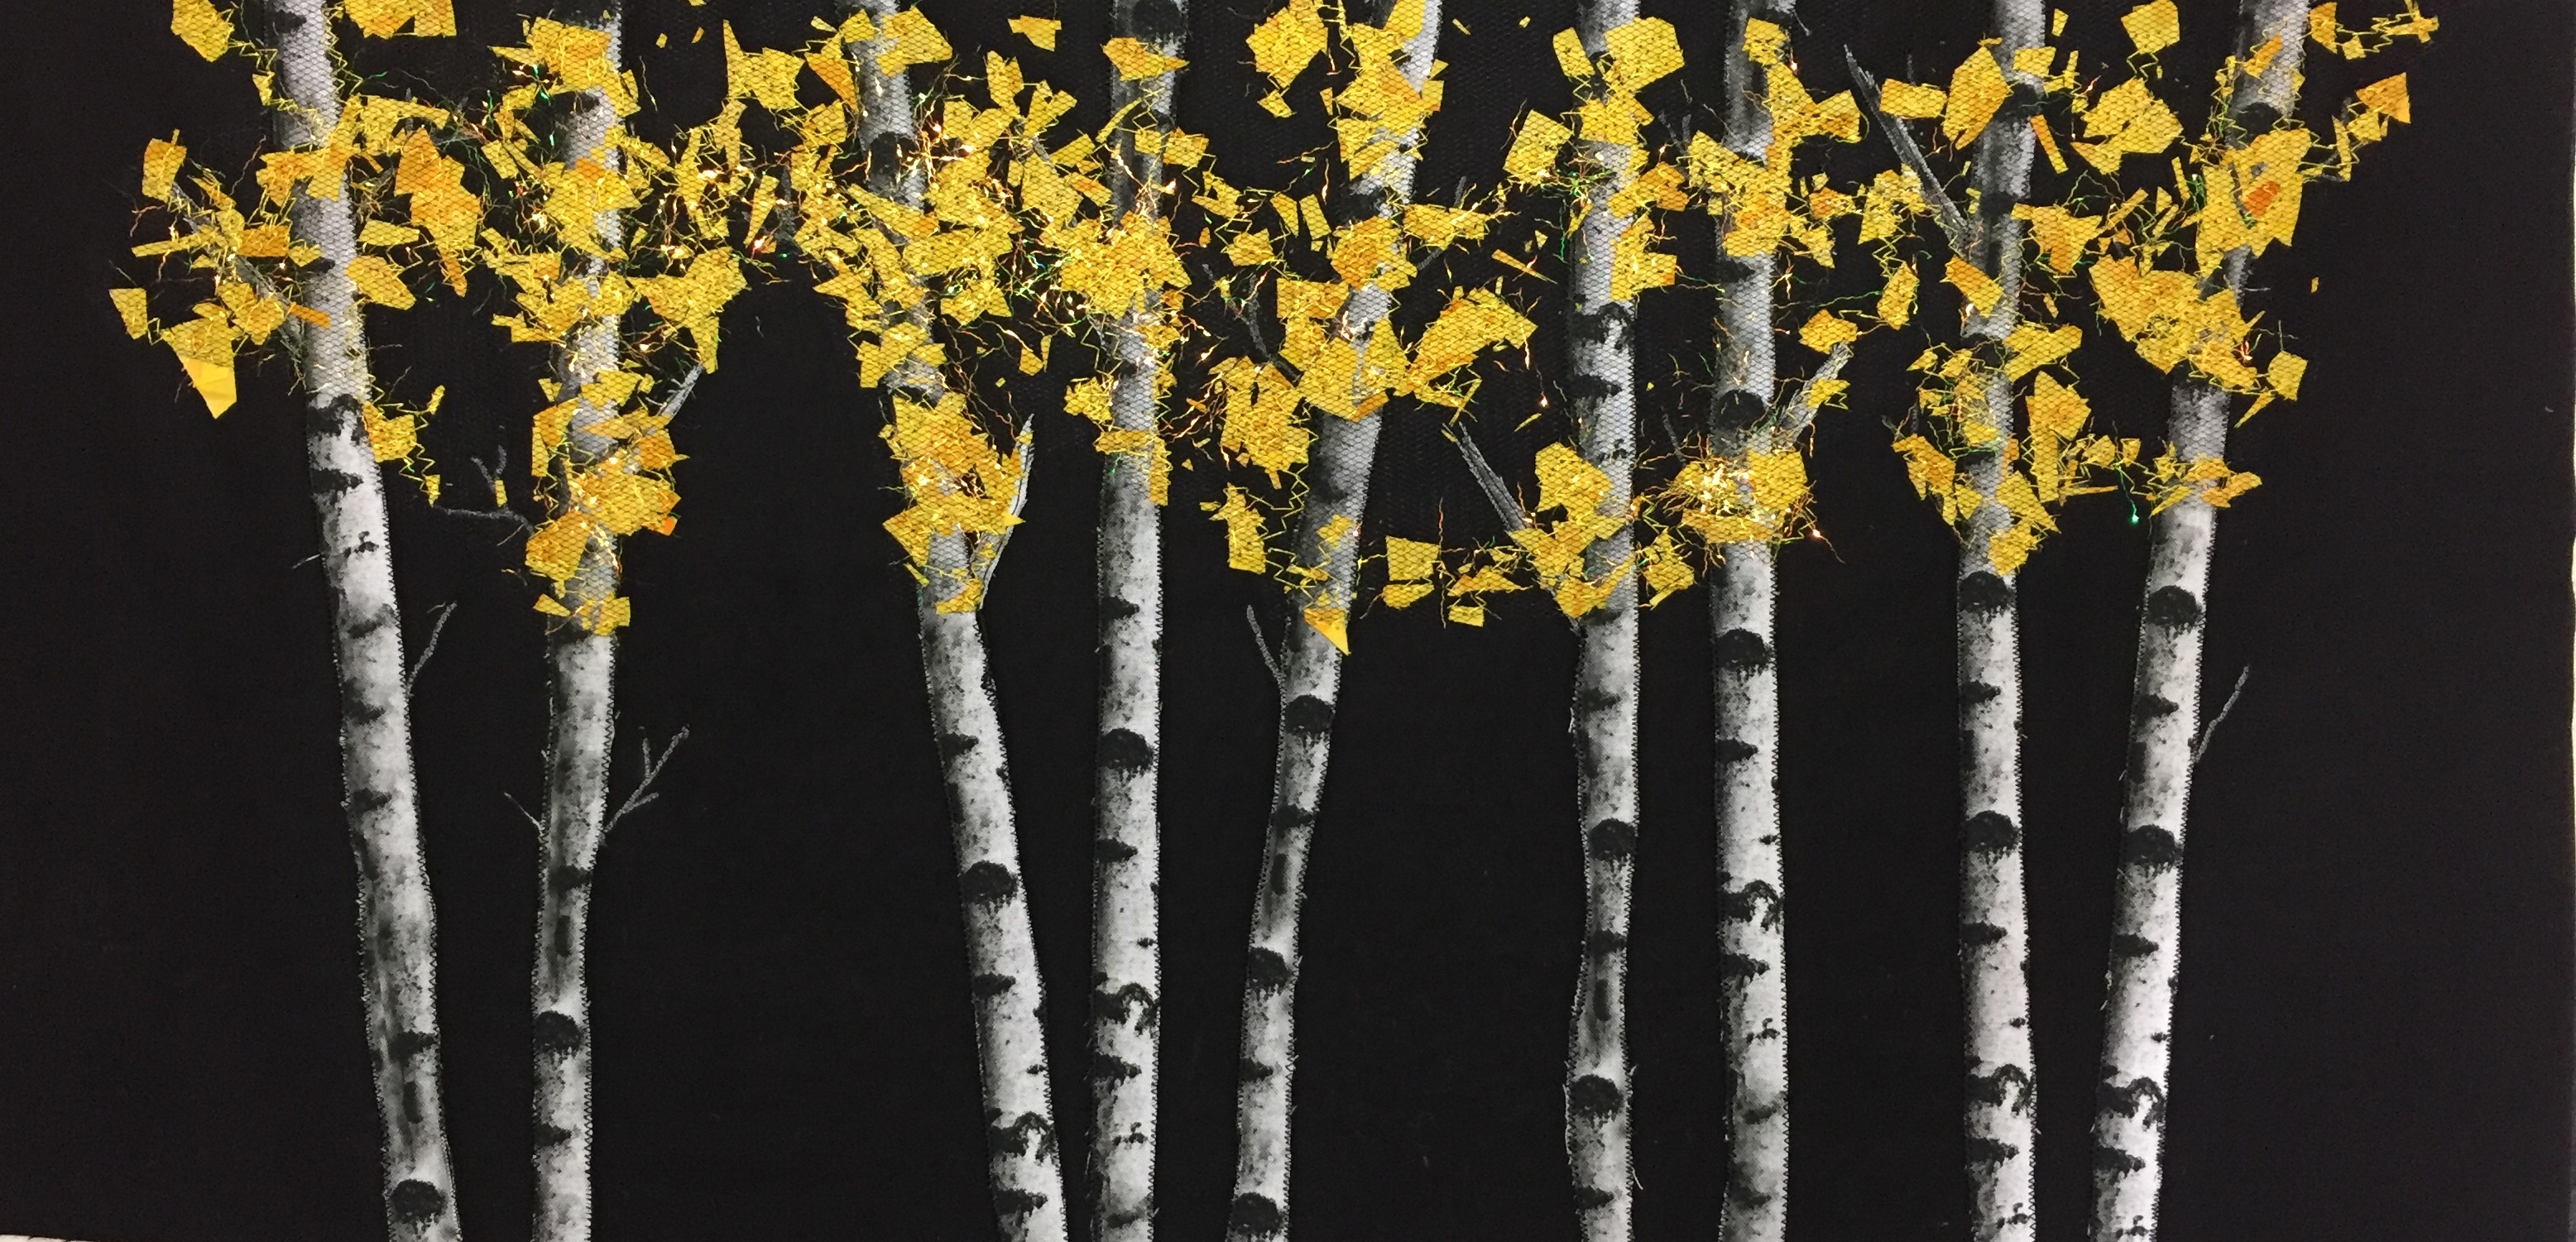 Birch Trees with Golden Leaves by Teresa Schlabach